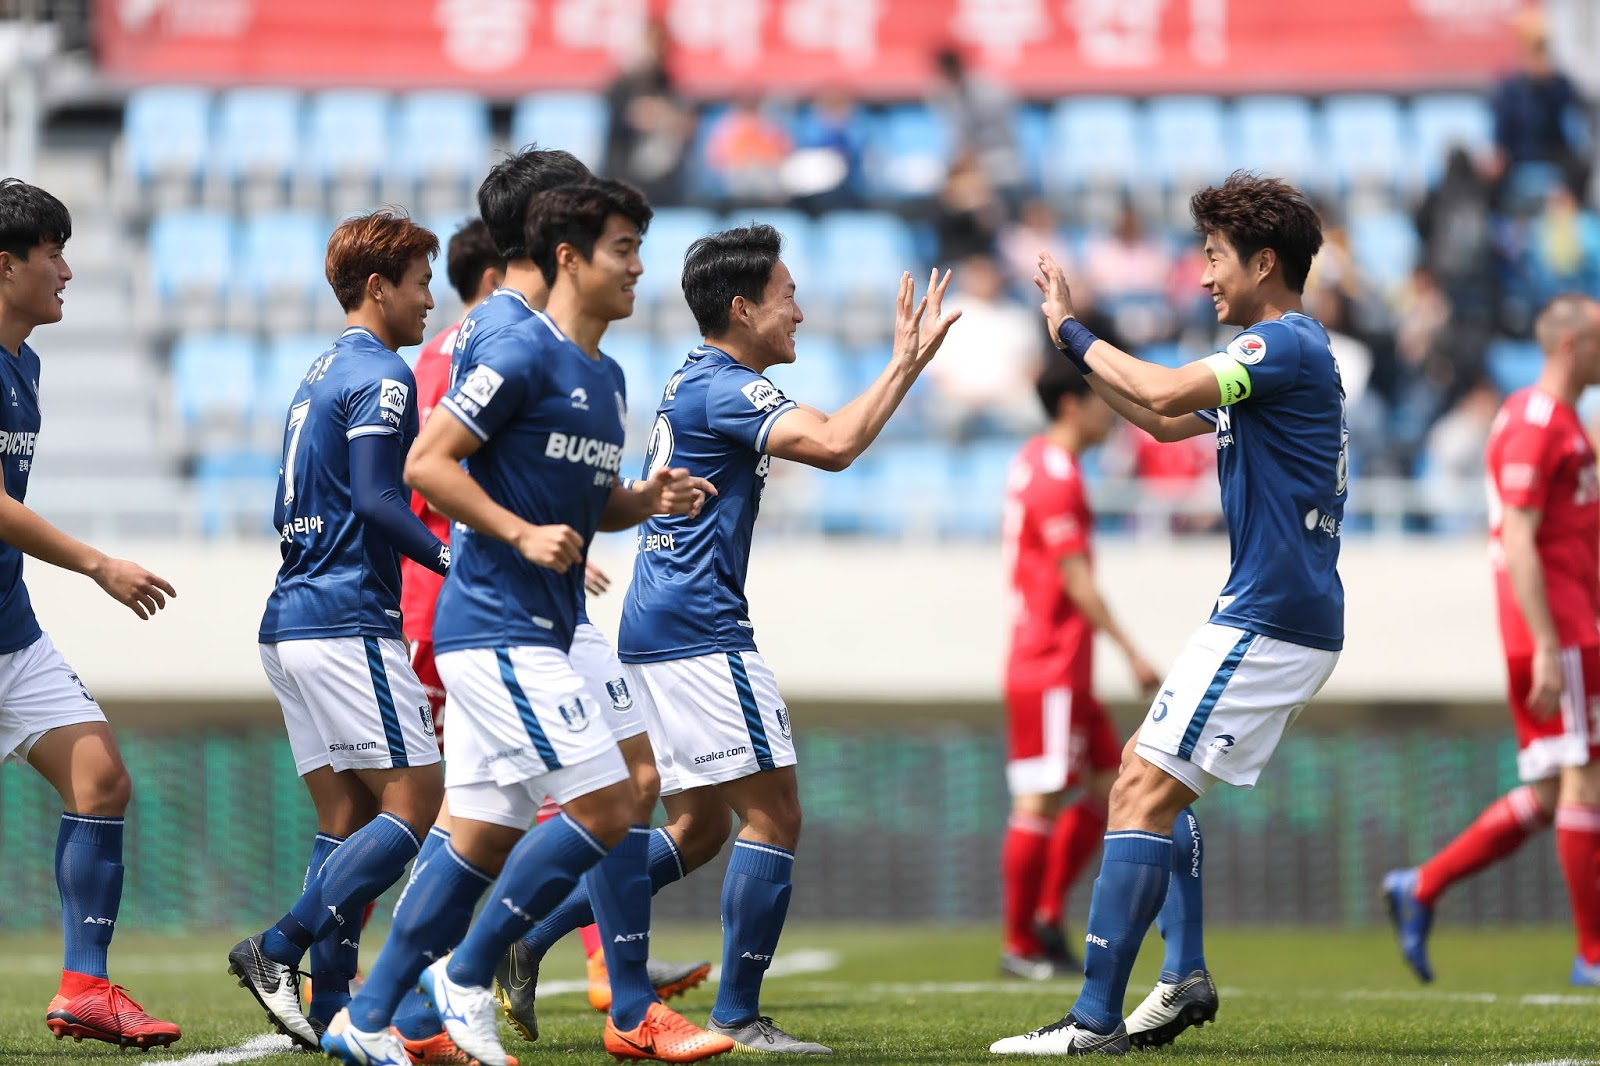 Preview: Bucheon FC 1995 vs Jeonnam Dragons K League 2 Round 5